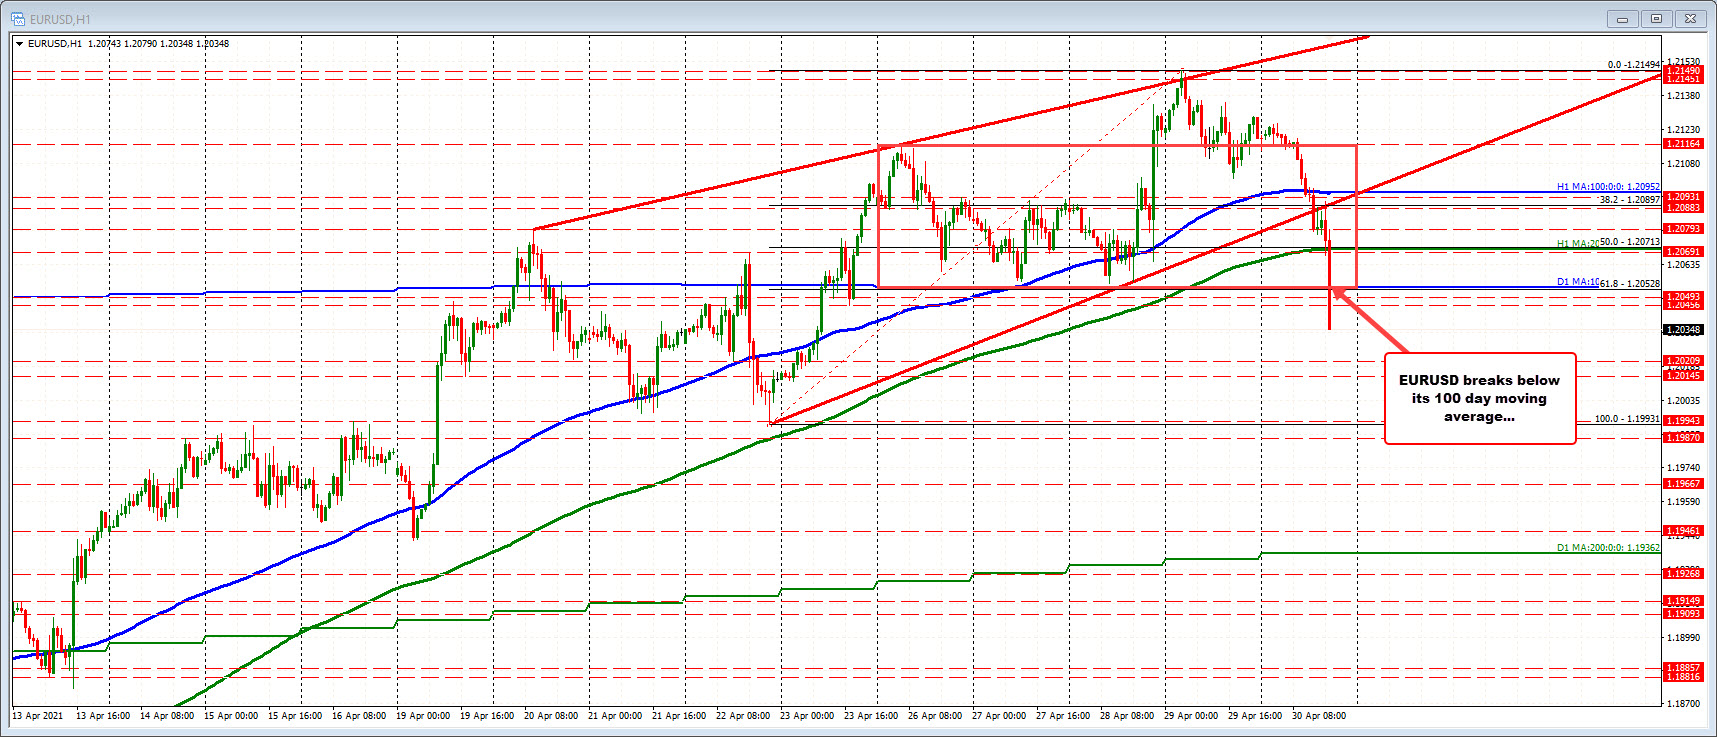 EURUSD moves to new lows and below 100 day MA ahead of London fix